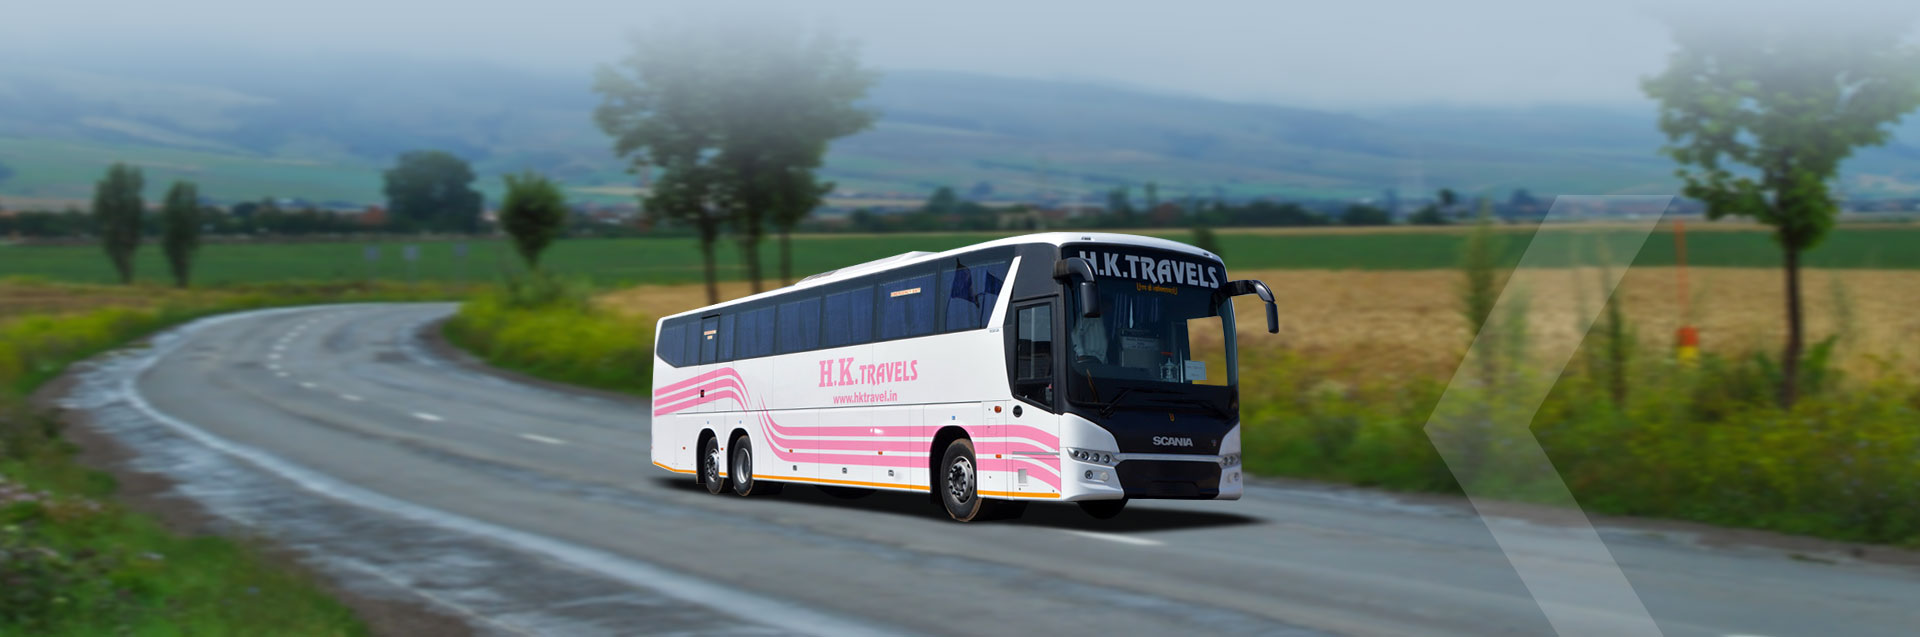 Online Bus Ticket Booking HK Travels